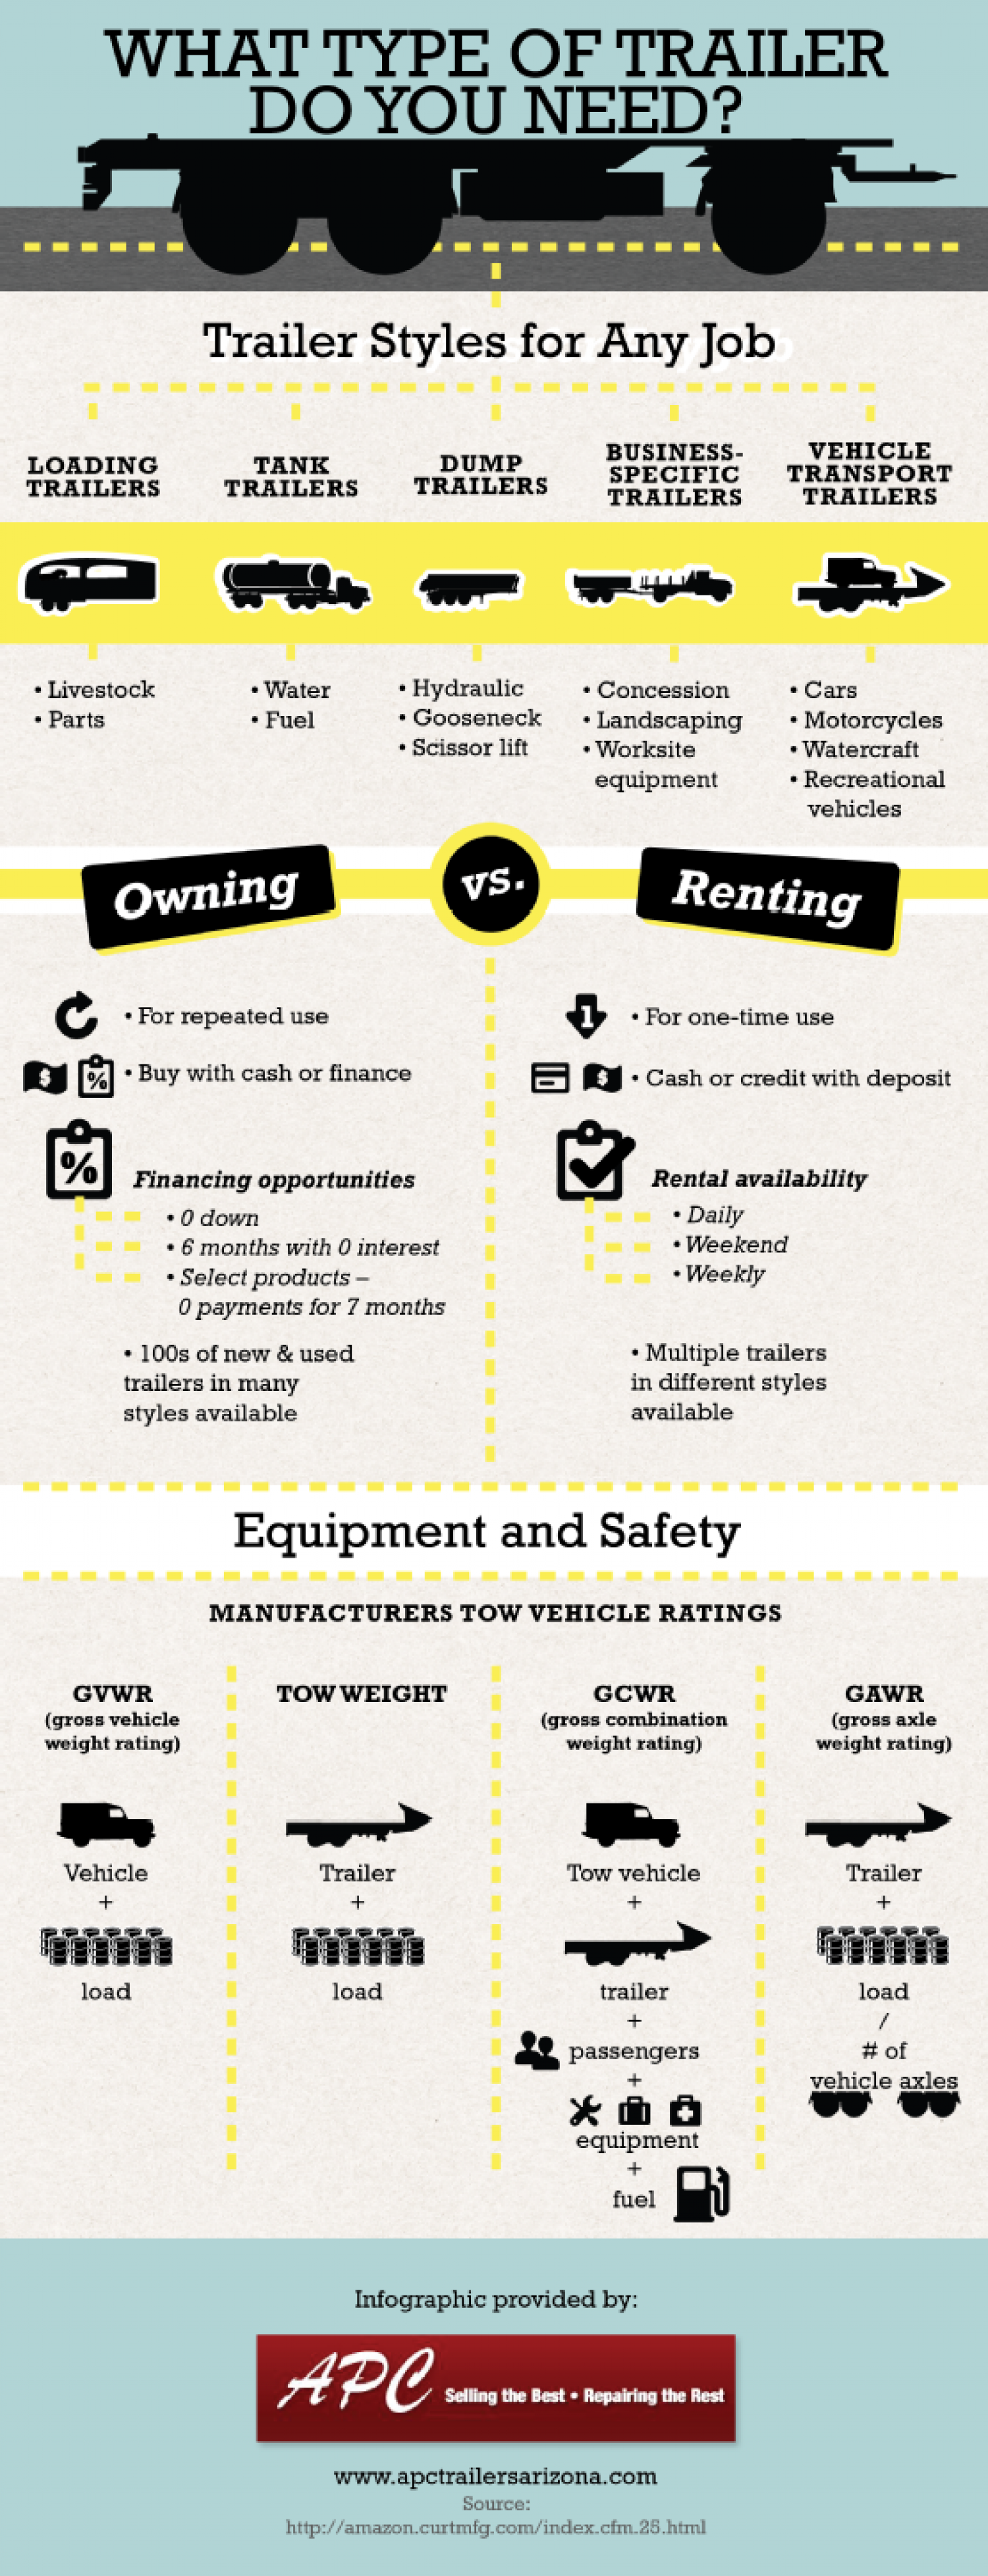 What Type of Trailer Do You Need? Infographic